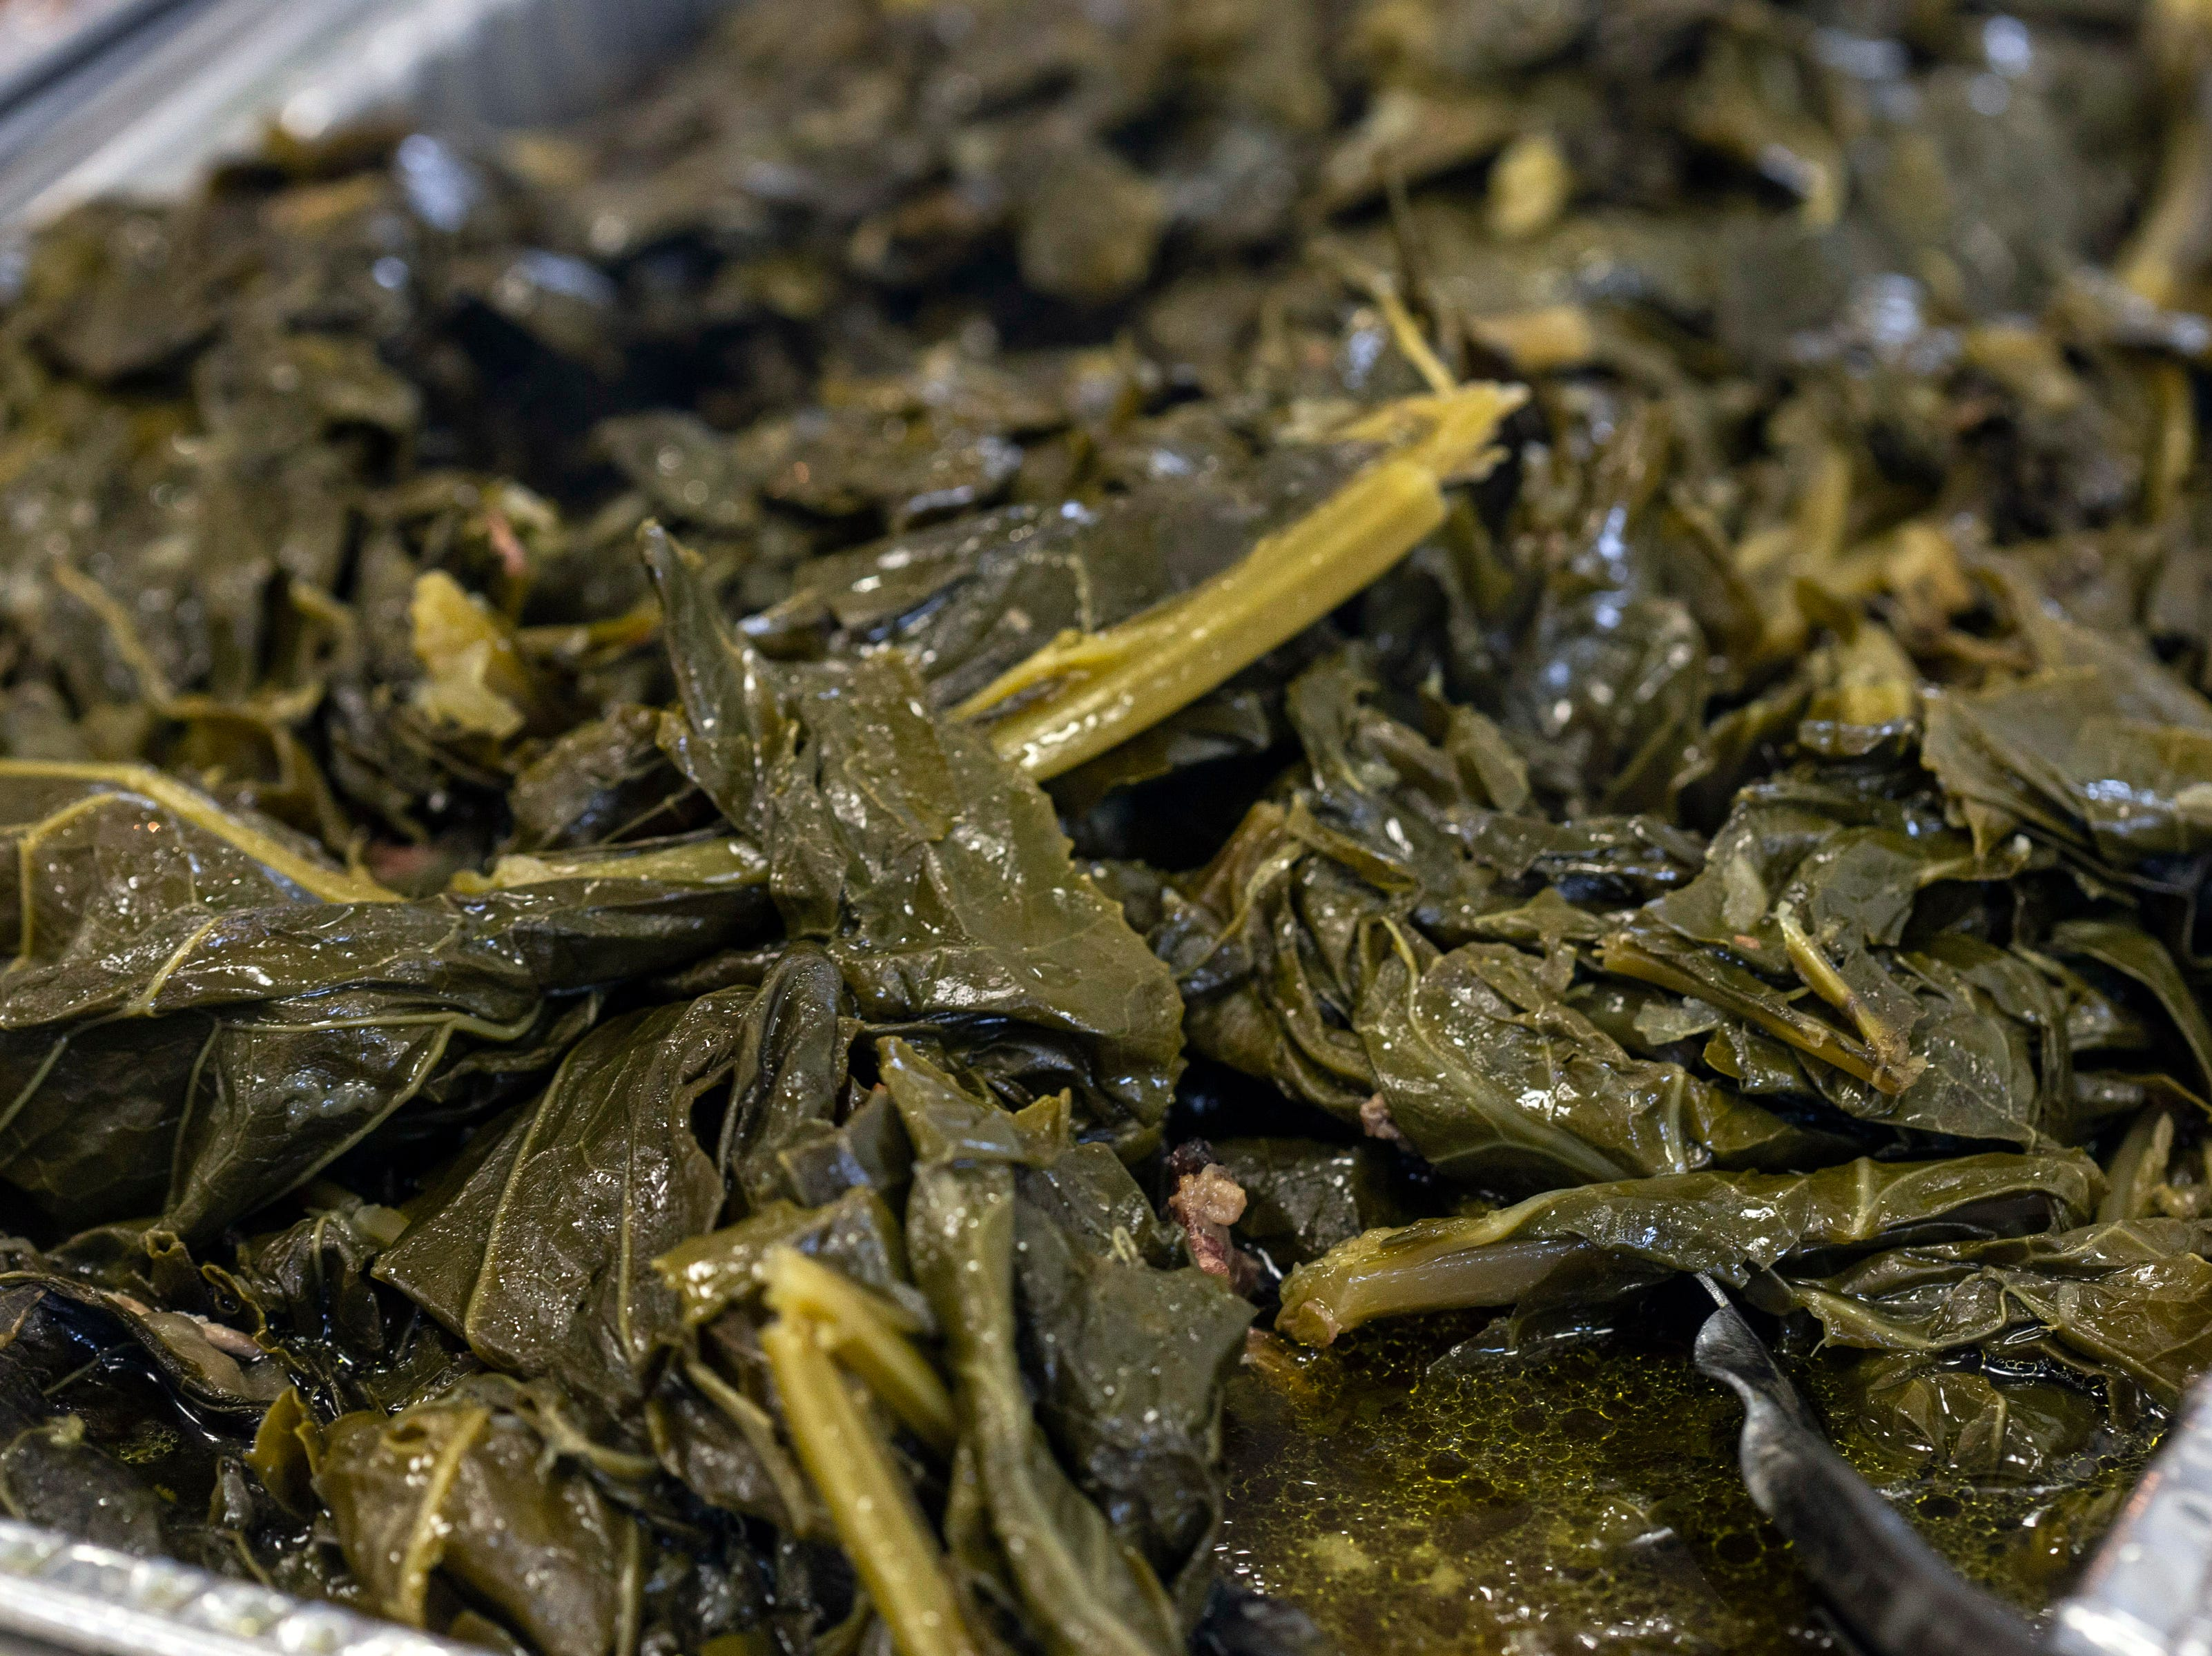 The collared greens at Lucretia's Kitchen are made with smoked turkey prepared in-house. 9/9/18